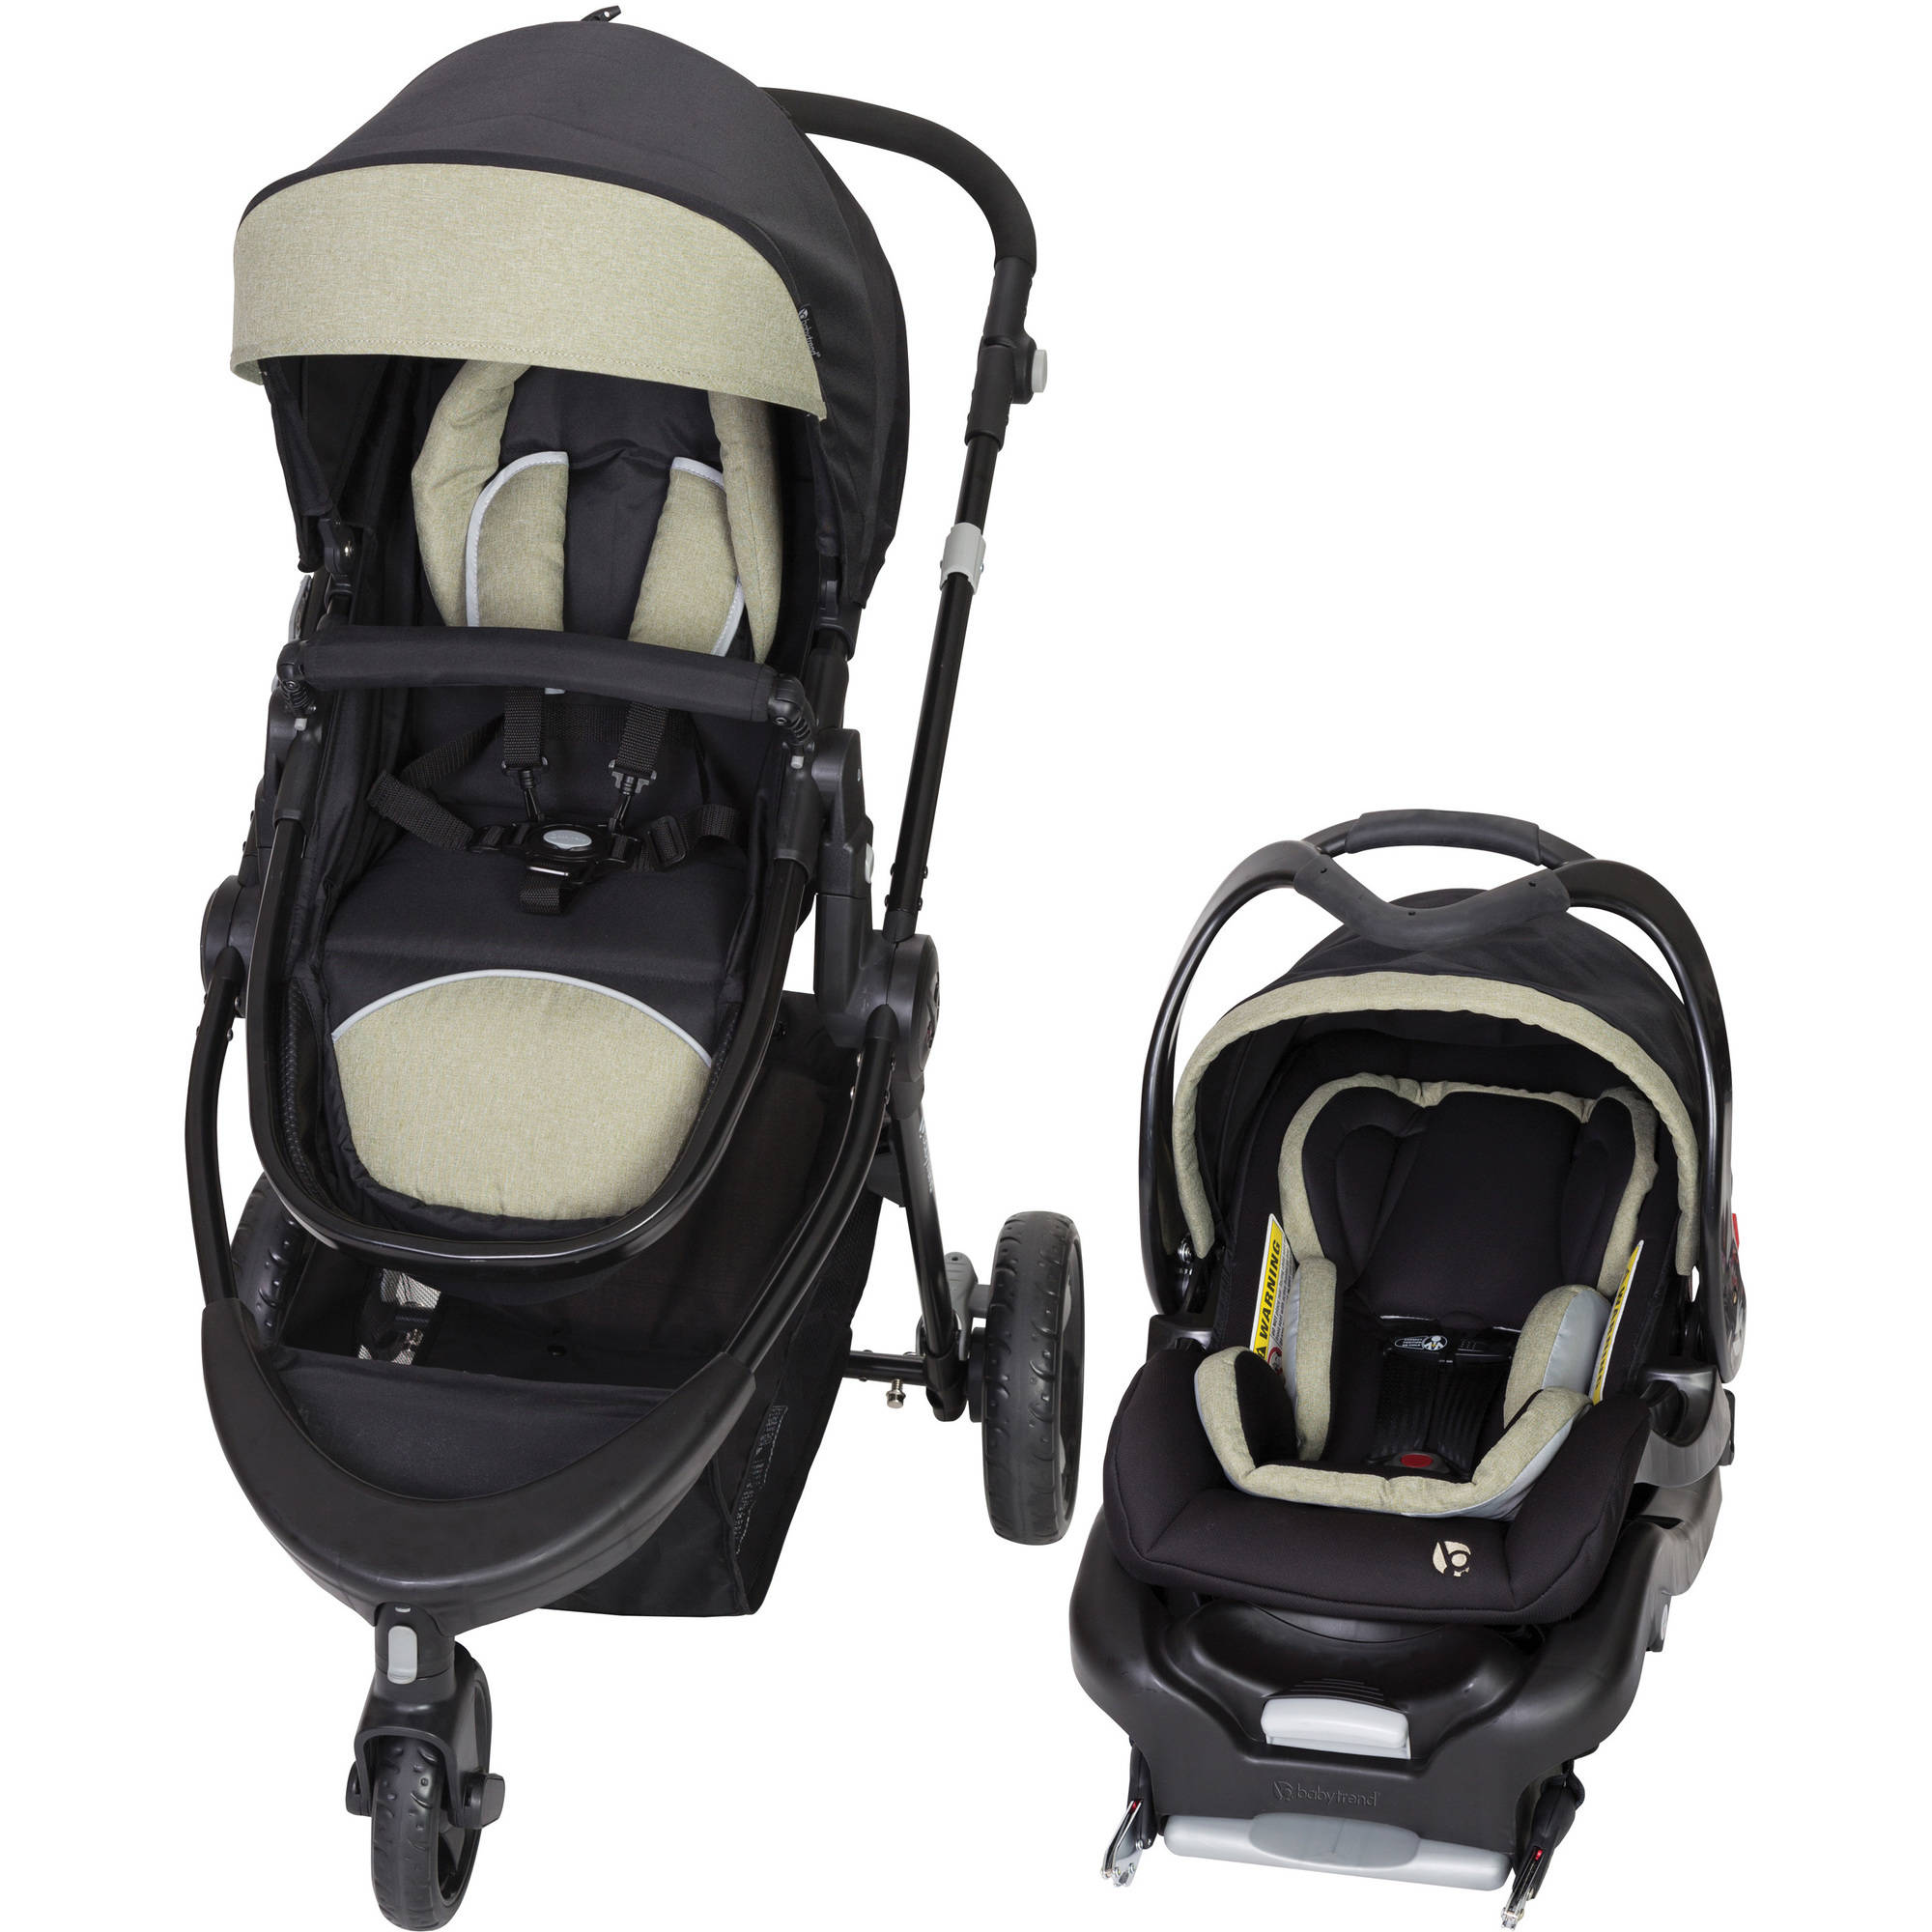 Baby Trend 1st Debut 3-Wheel Travel System, Serene Green by Baby Trend